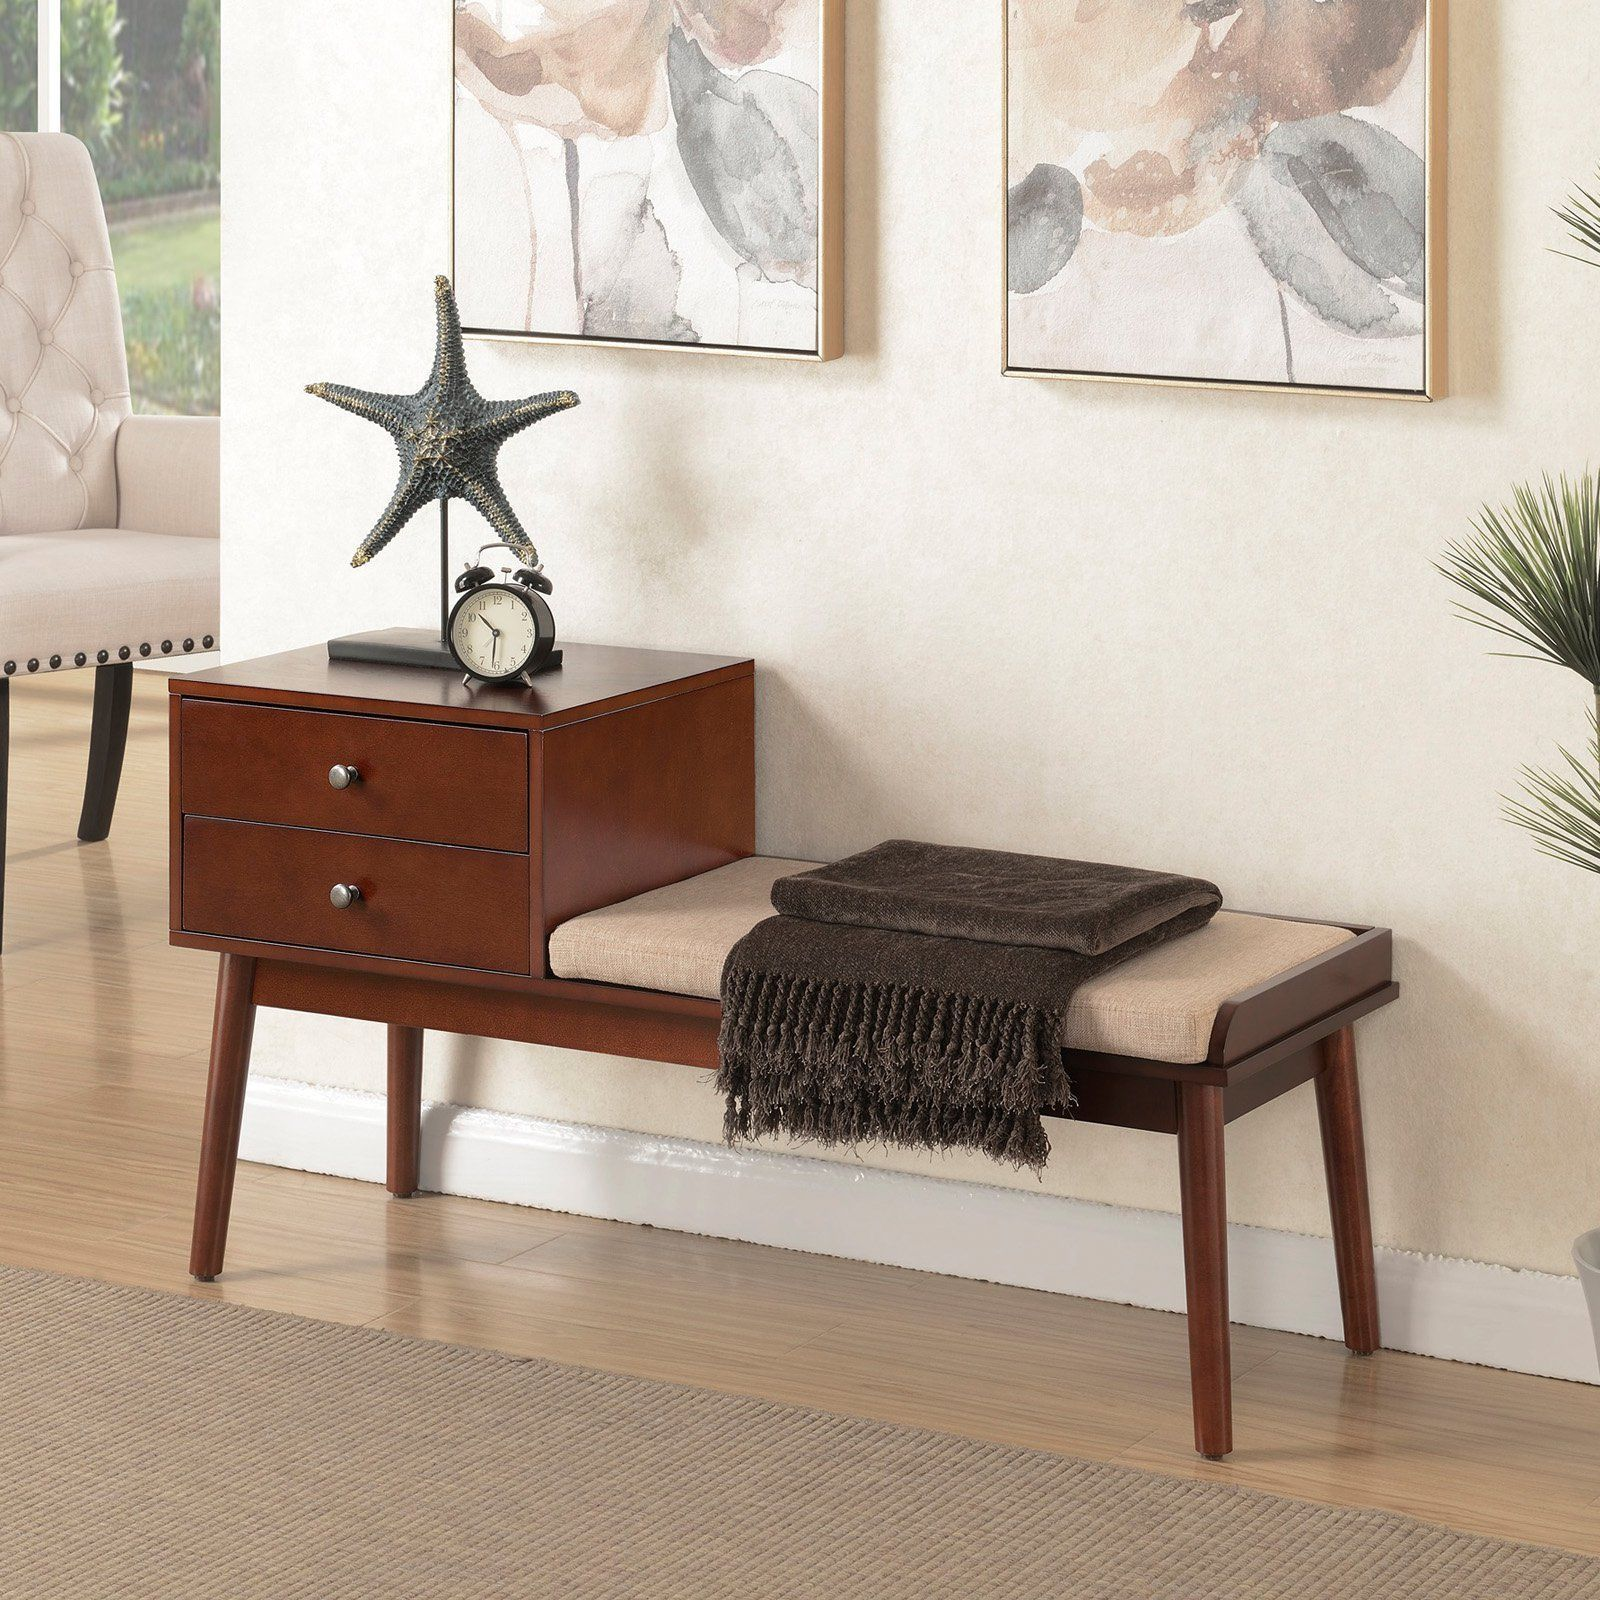 Modern Entryway Benches: Mid Century Modern Wood Entryway Bench With Storage